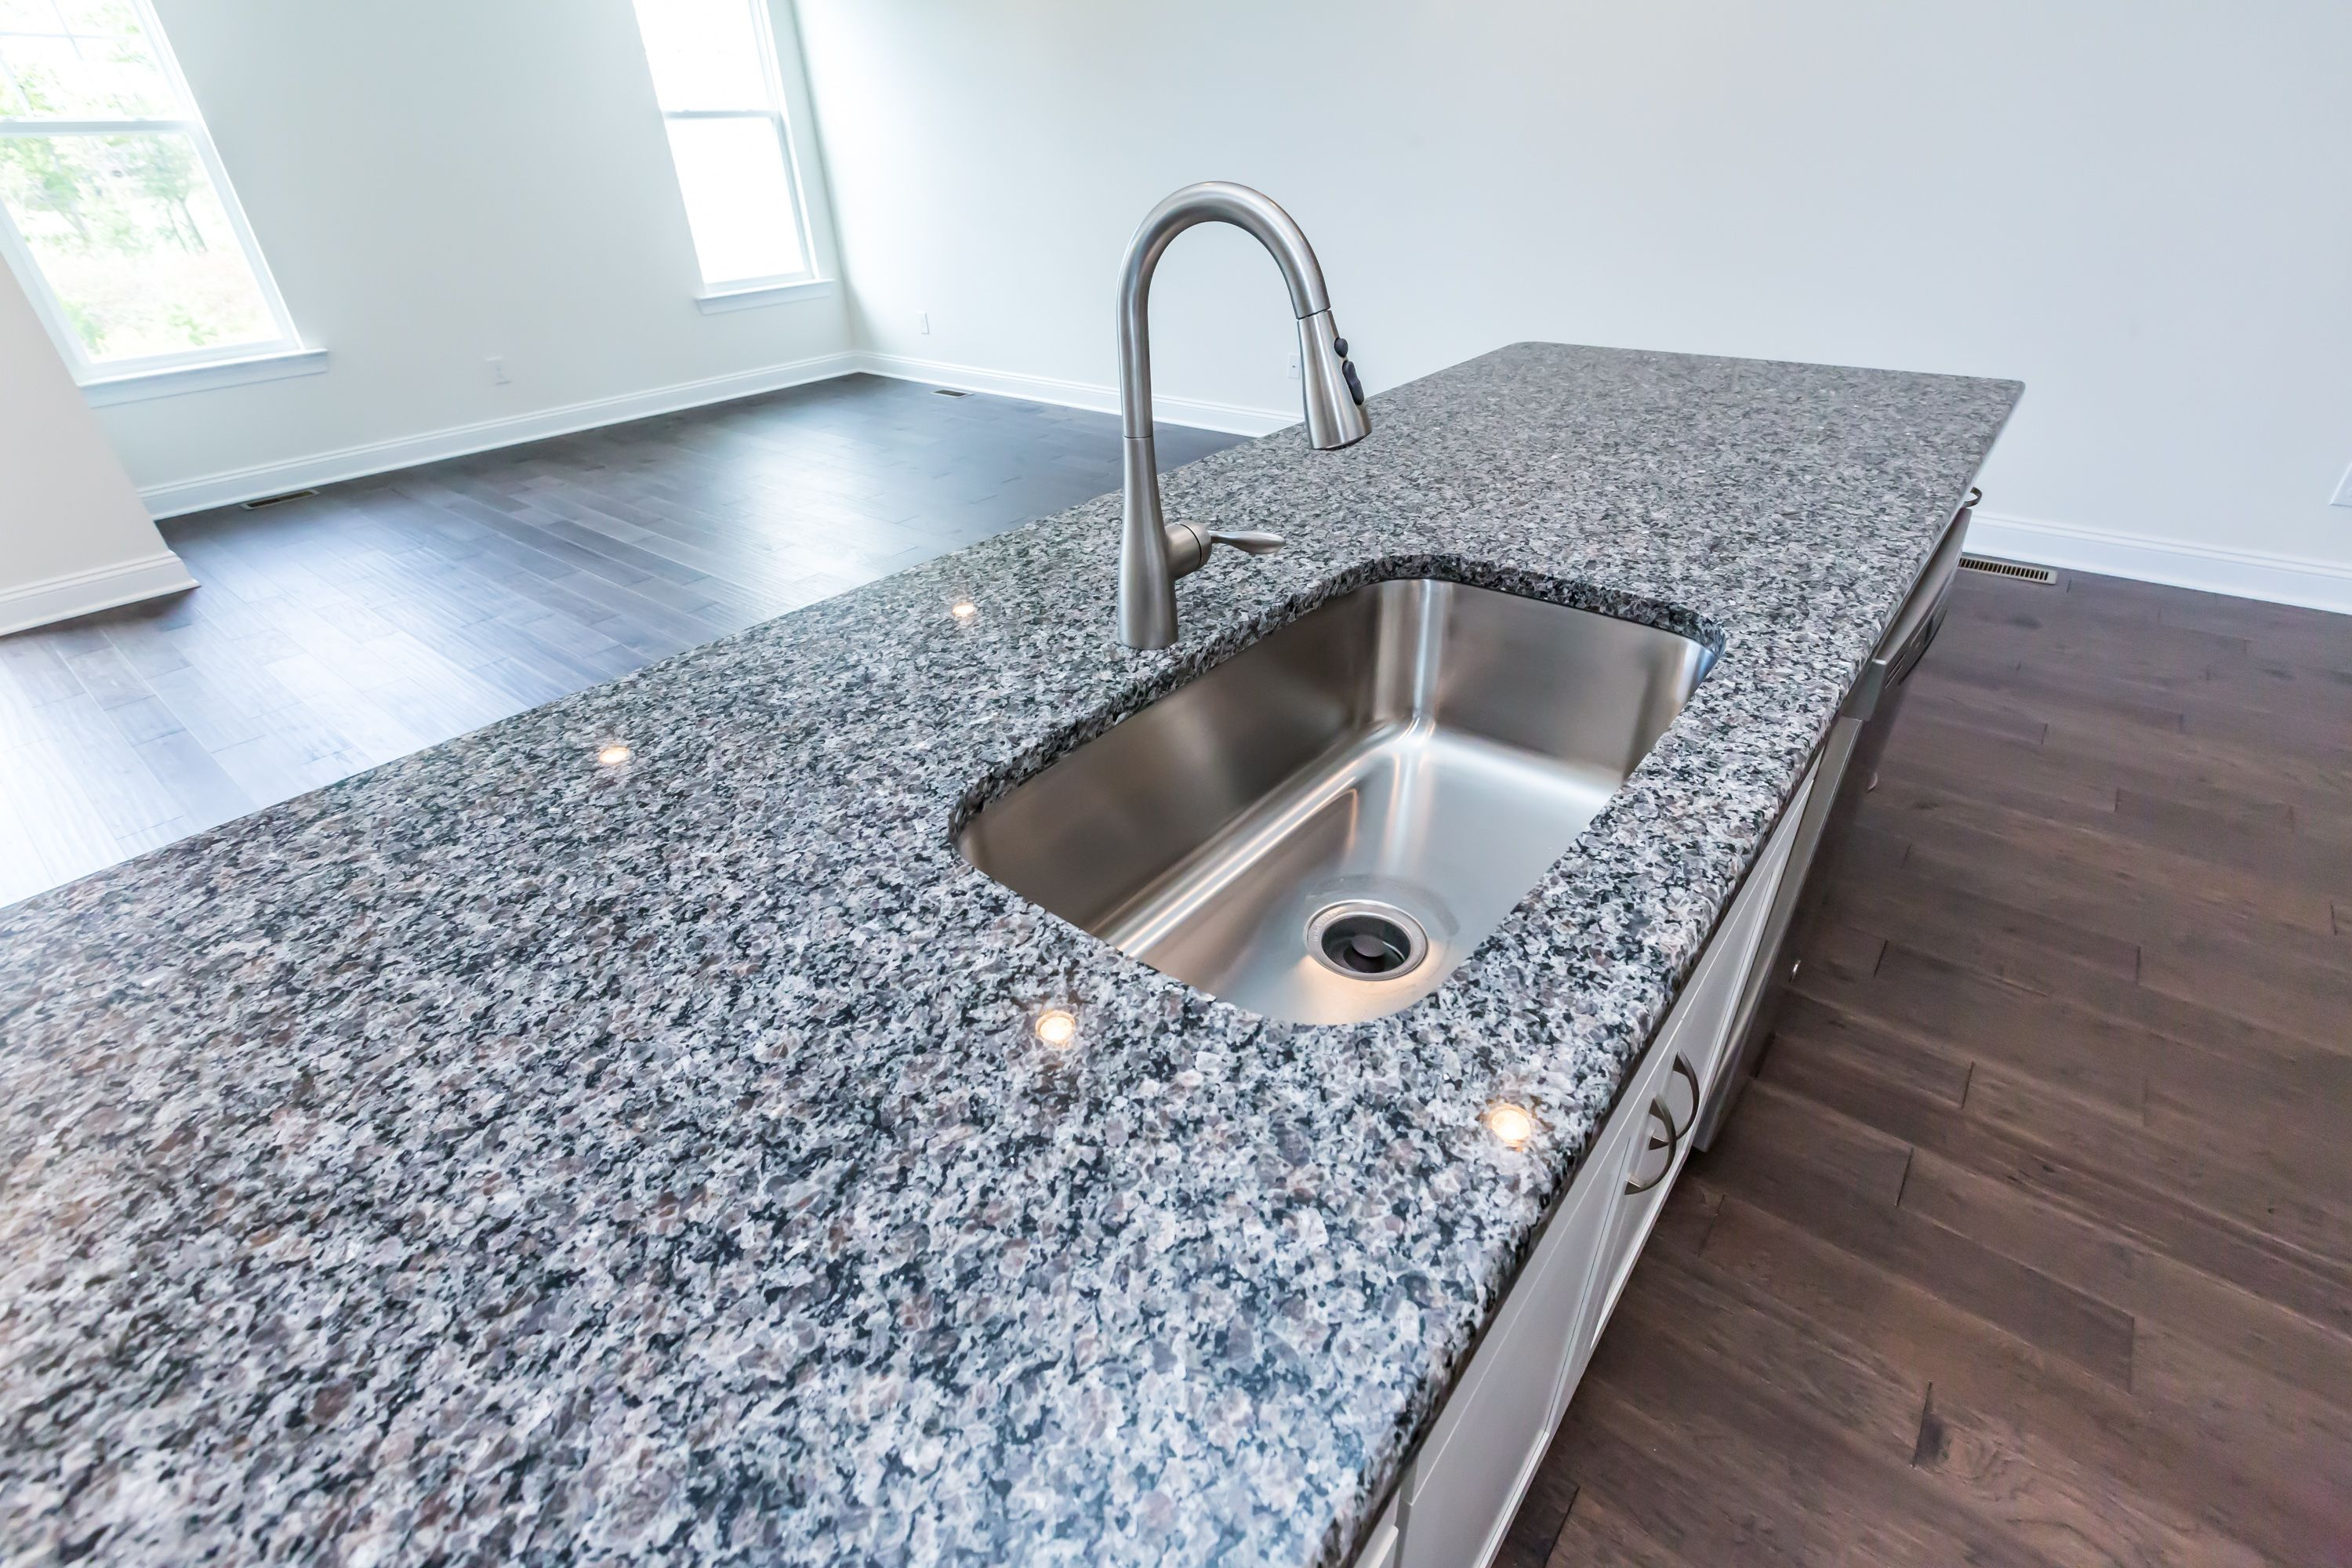 Kitchen featured in the Sutton By Rouse Chamberlin Homes in Philadelphia, PA